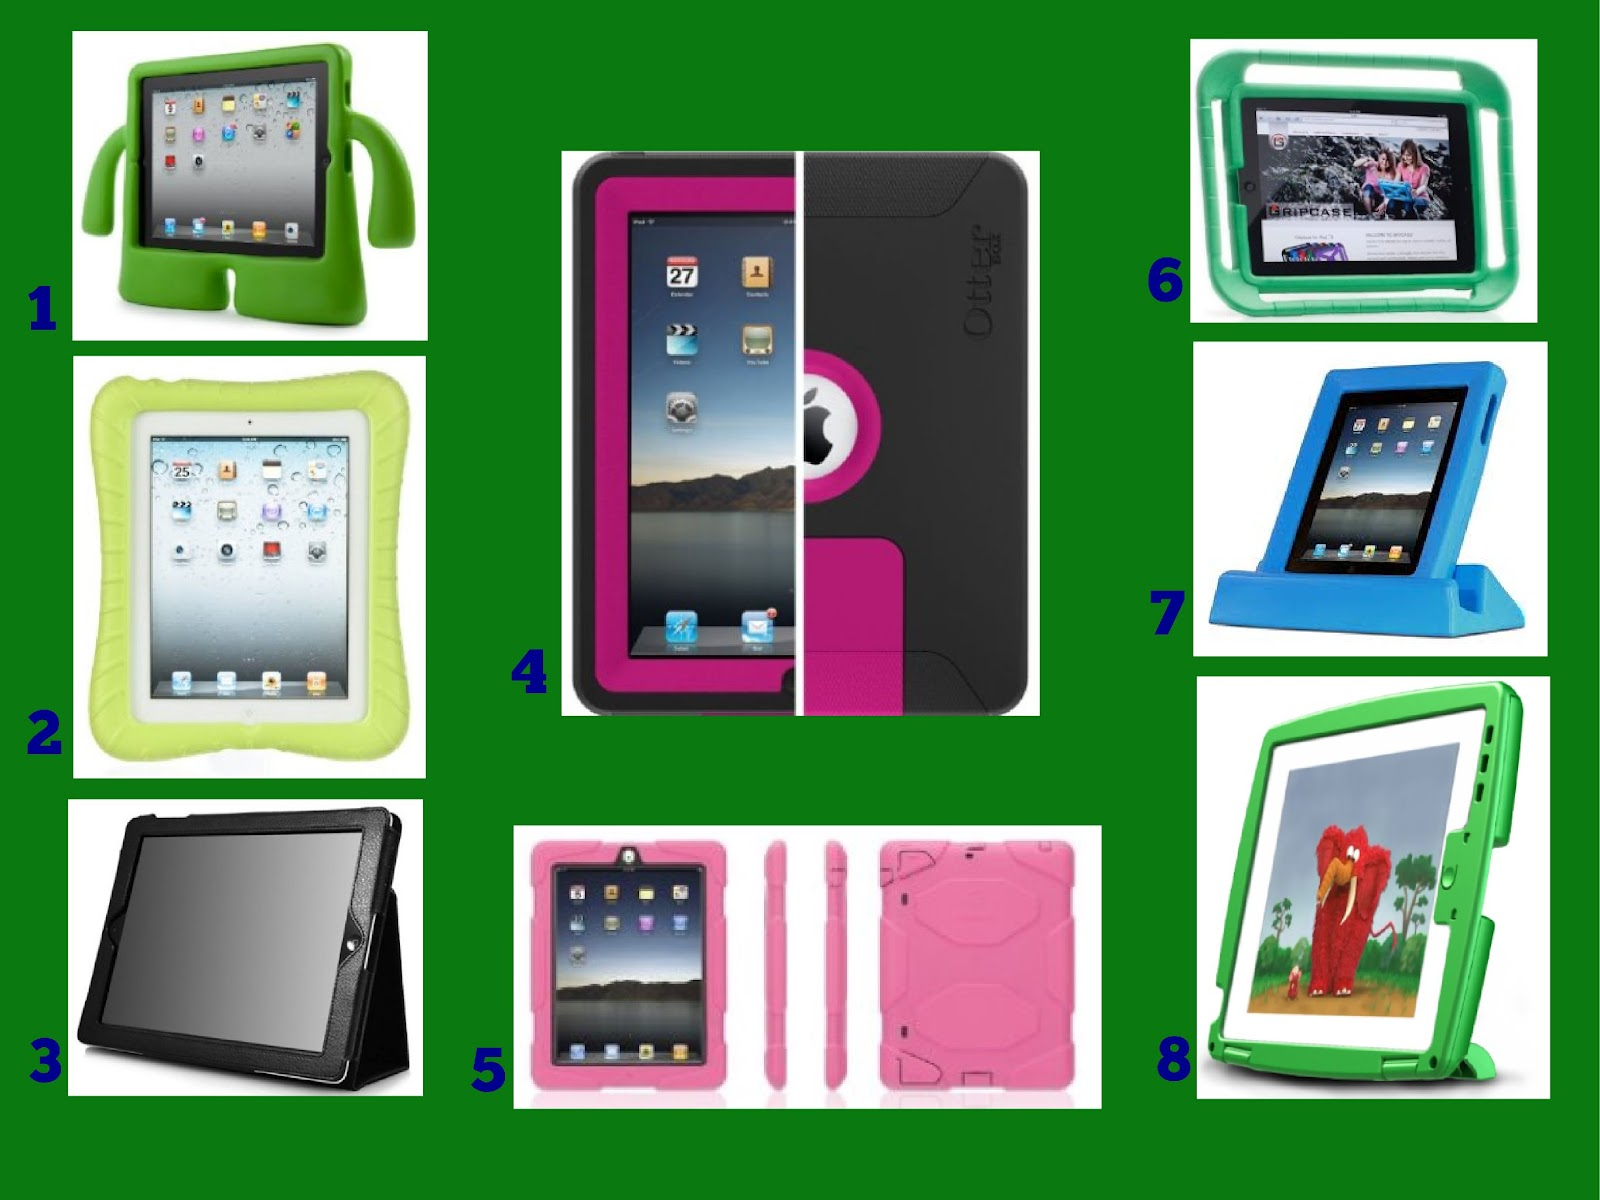 http://2.bp.blogspot.com/-VNU1wm2wz_A/T3T6UV4NZmI/AAAAAAAAAc8/StZEpCxuPe8/s1600/iPad%20Covers.jpeg